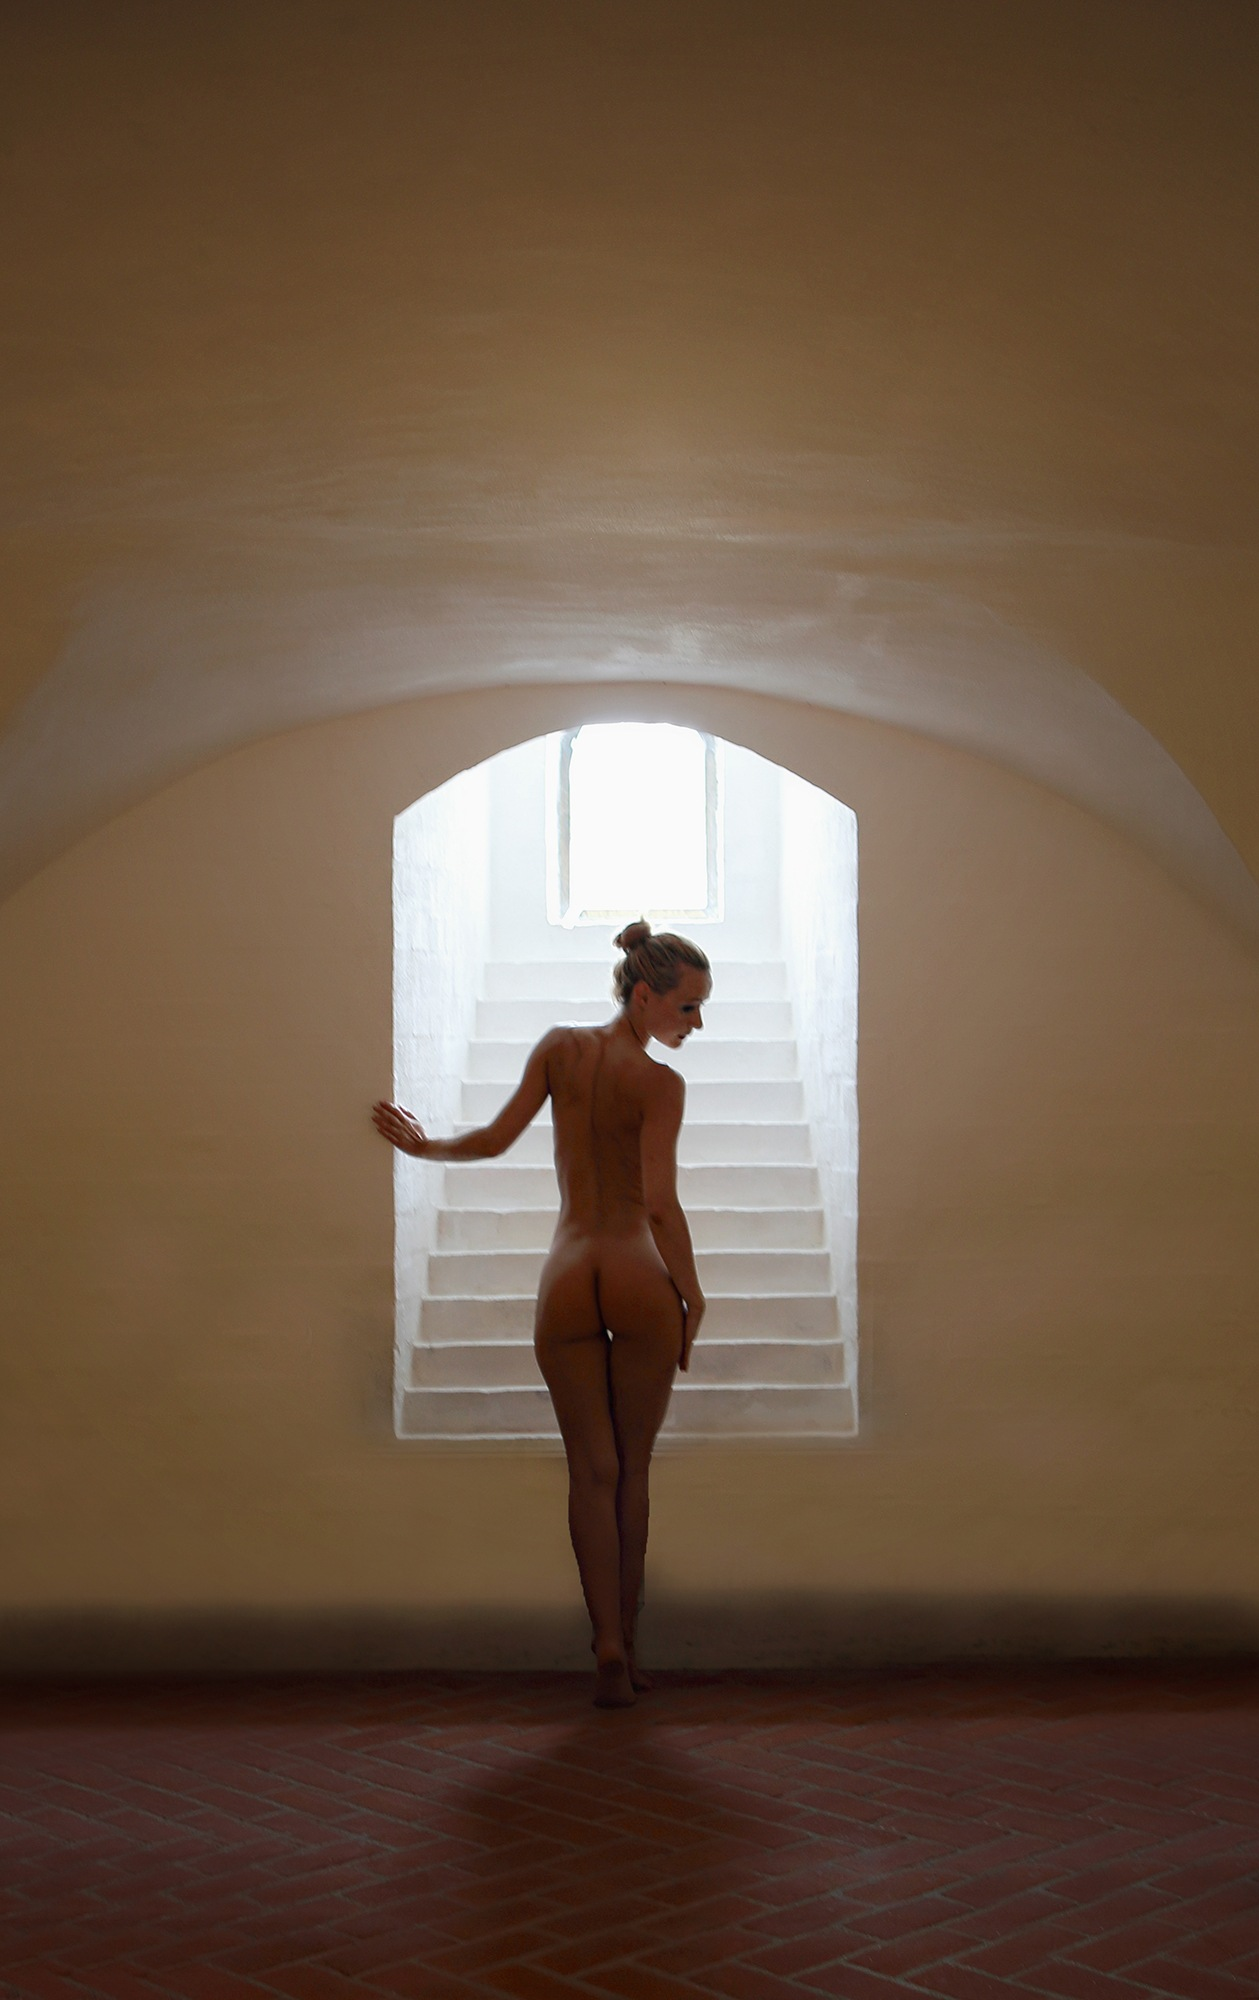 Stairway to....  by AB Tønnesen - Freelance model